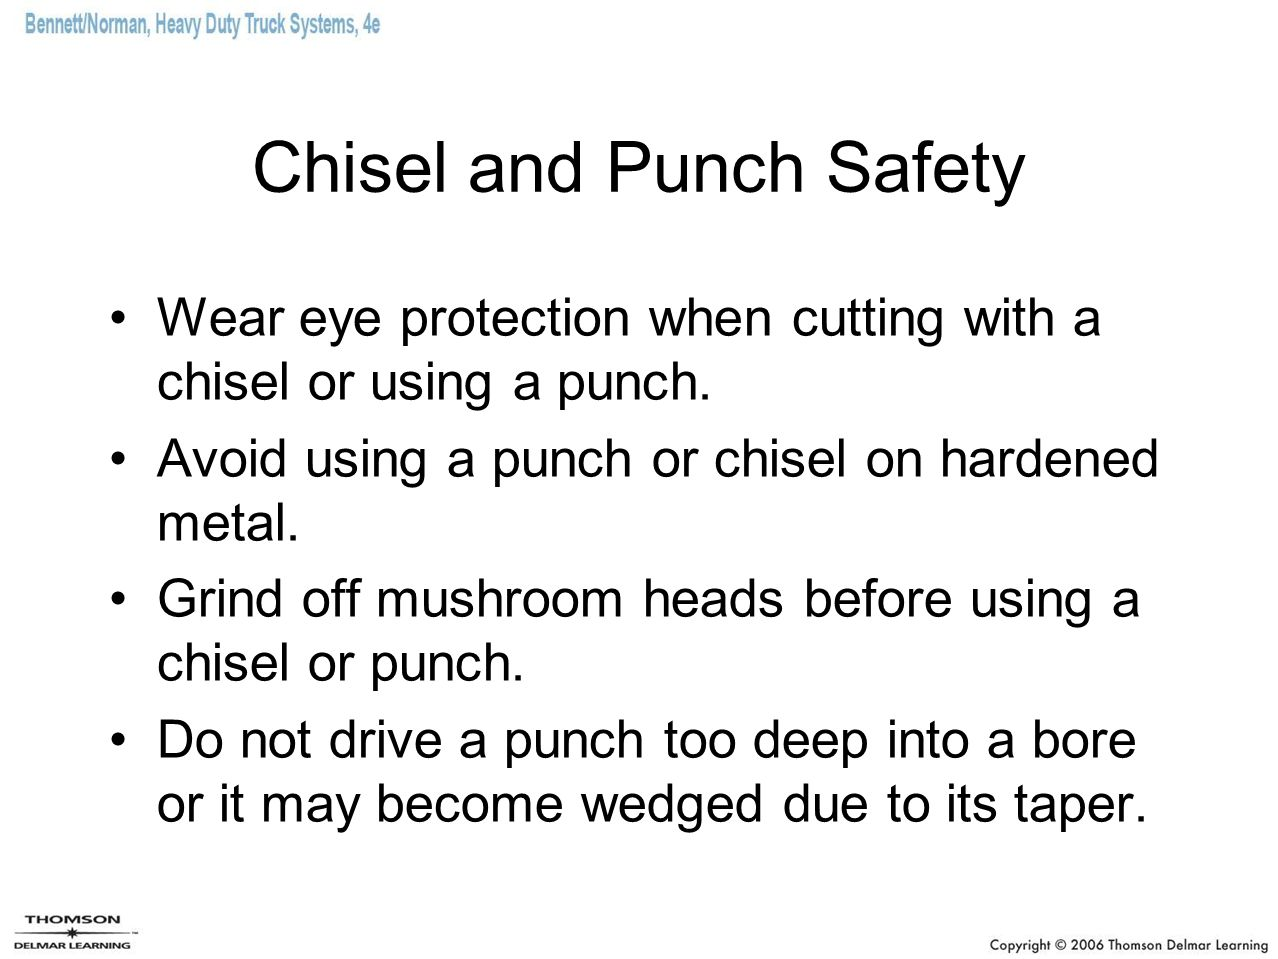 Chisel and Punch Safety